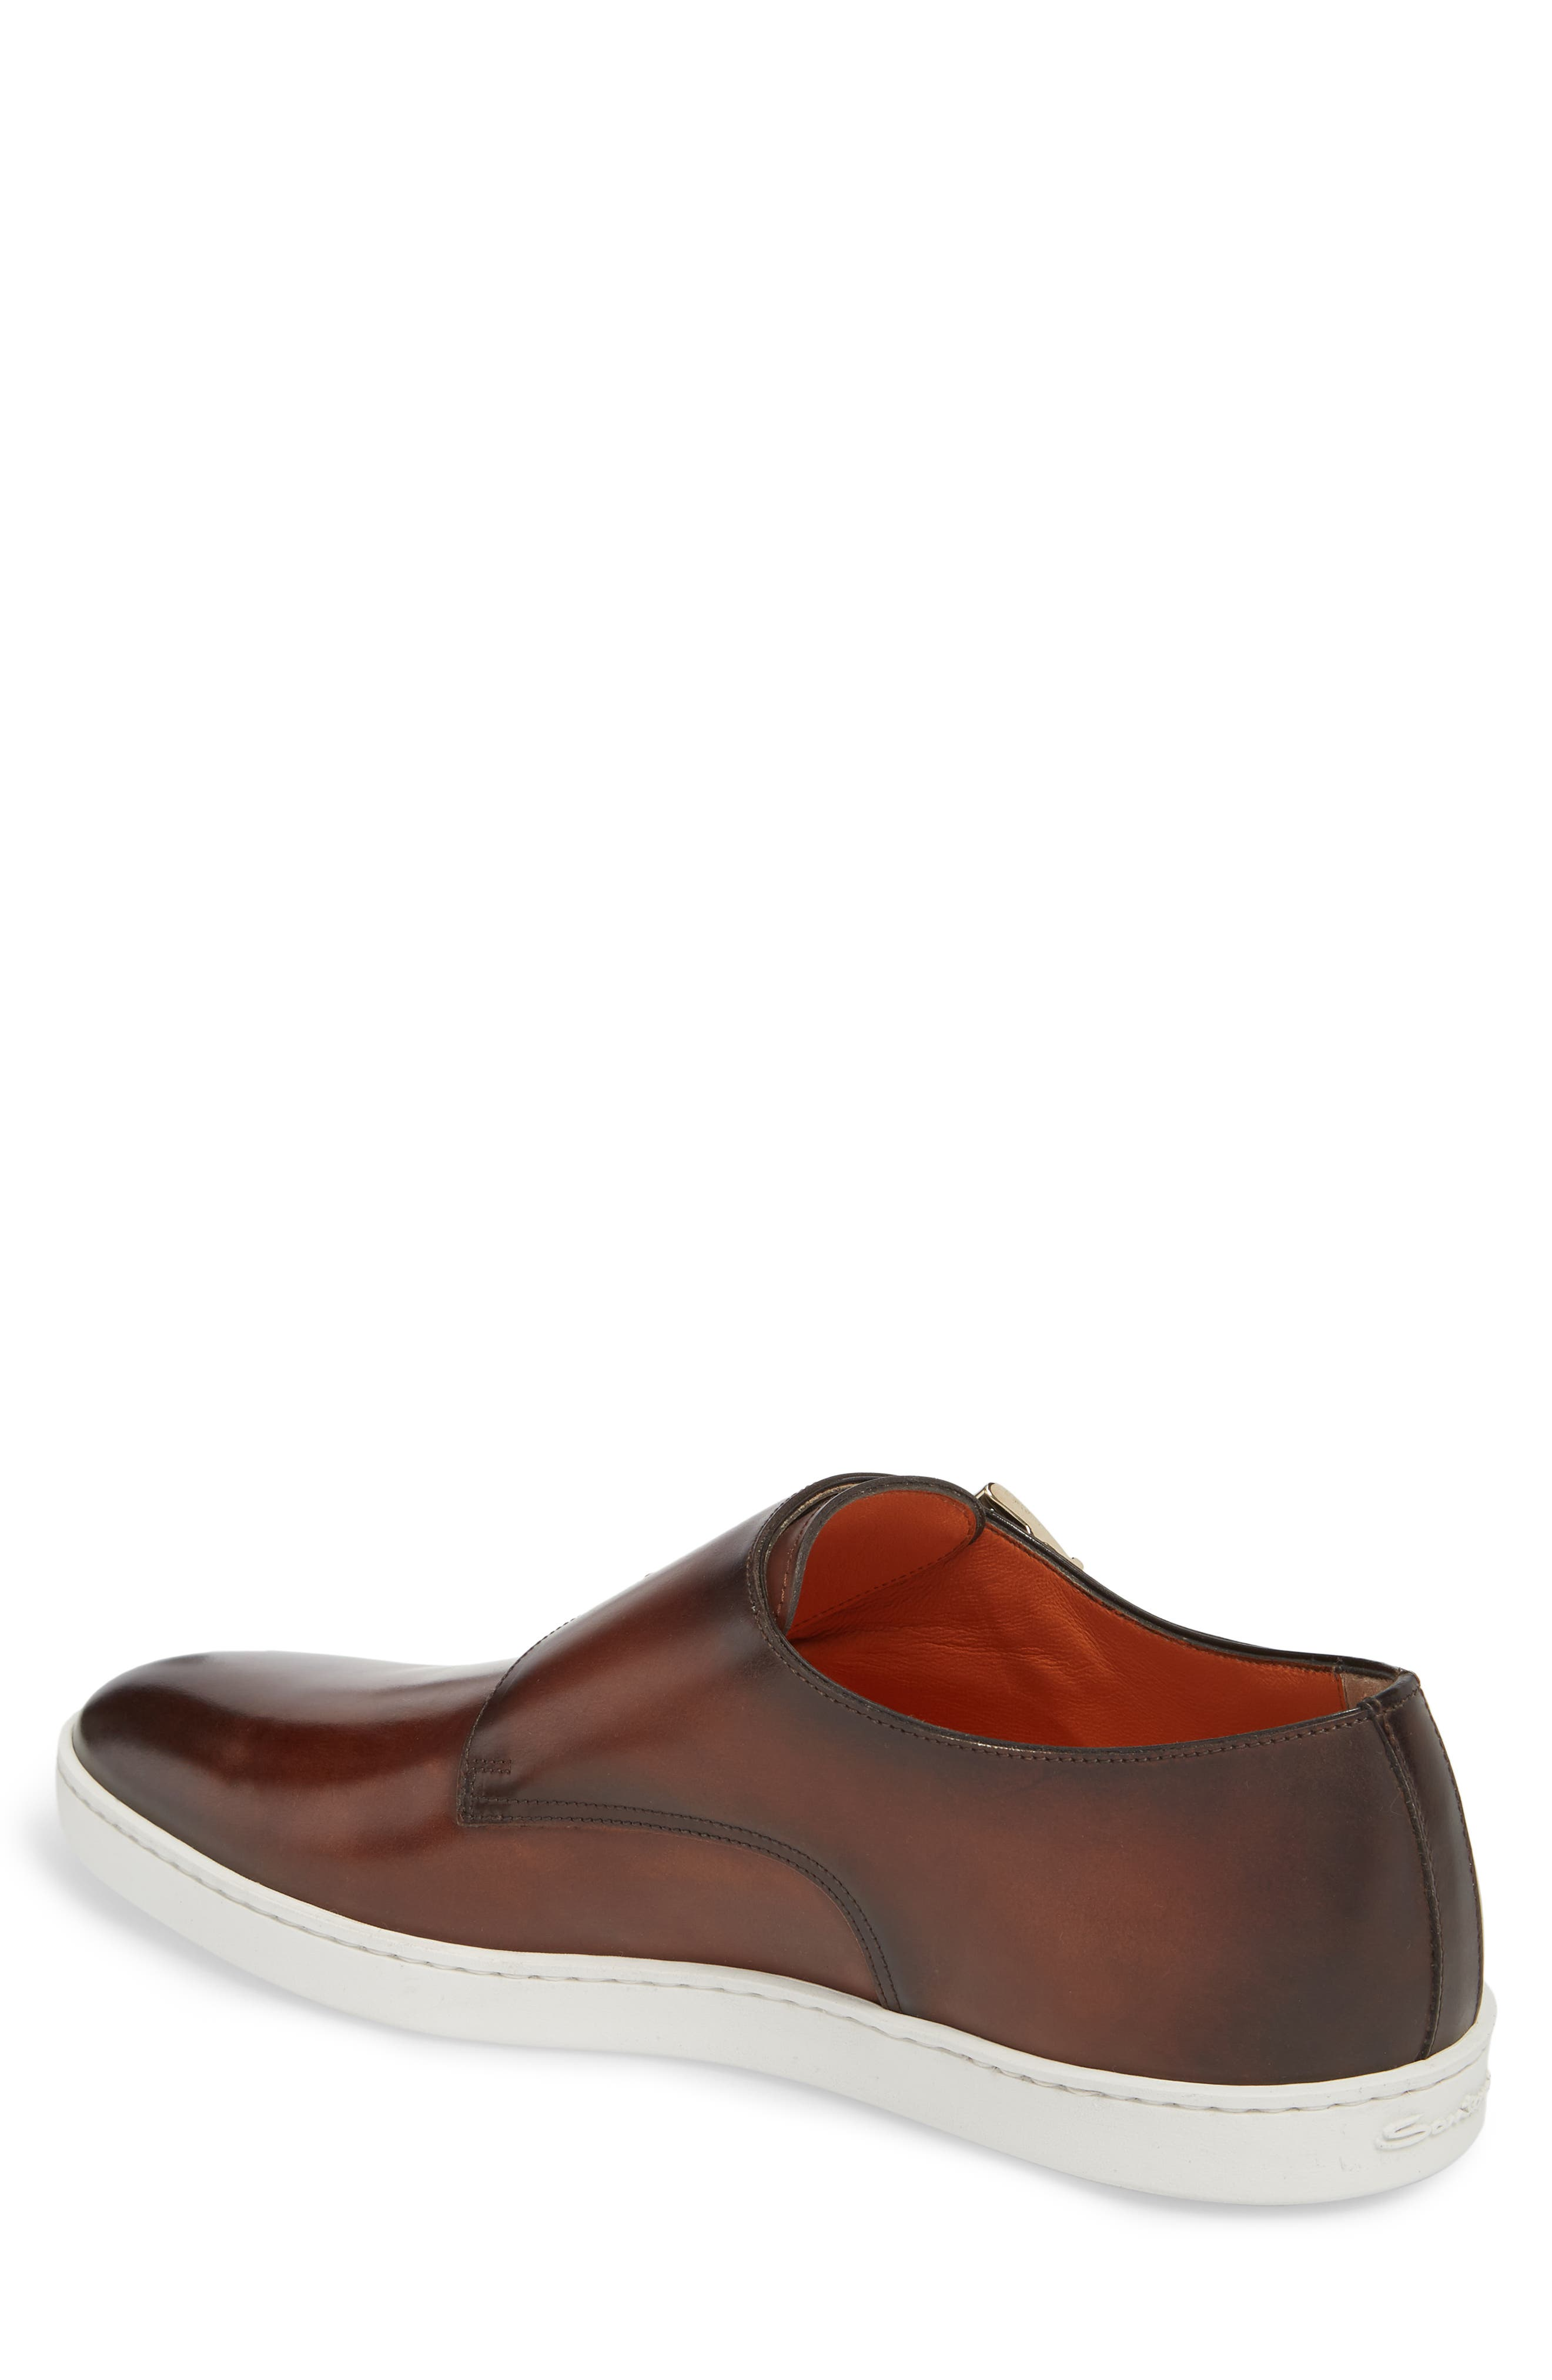 Freemont Double Monk Strap Shoe,                             Alternate thumbnail 2, color,                             Brown